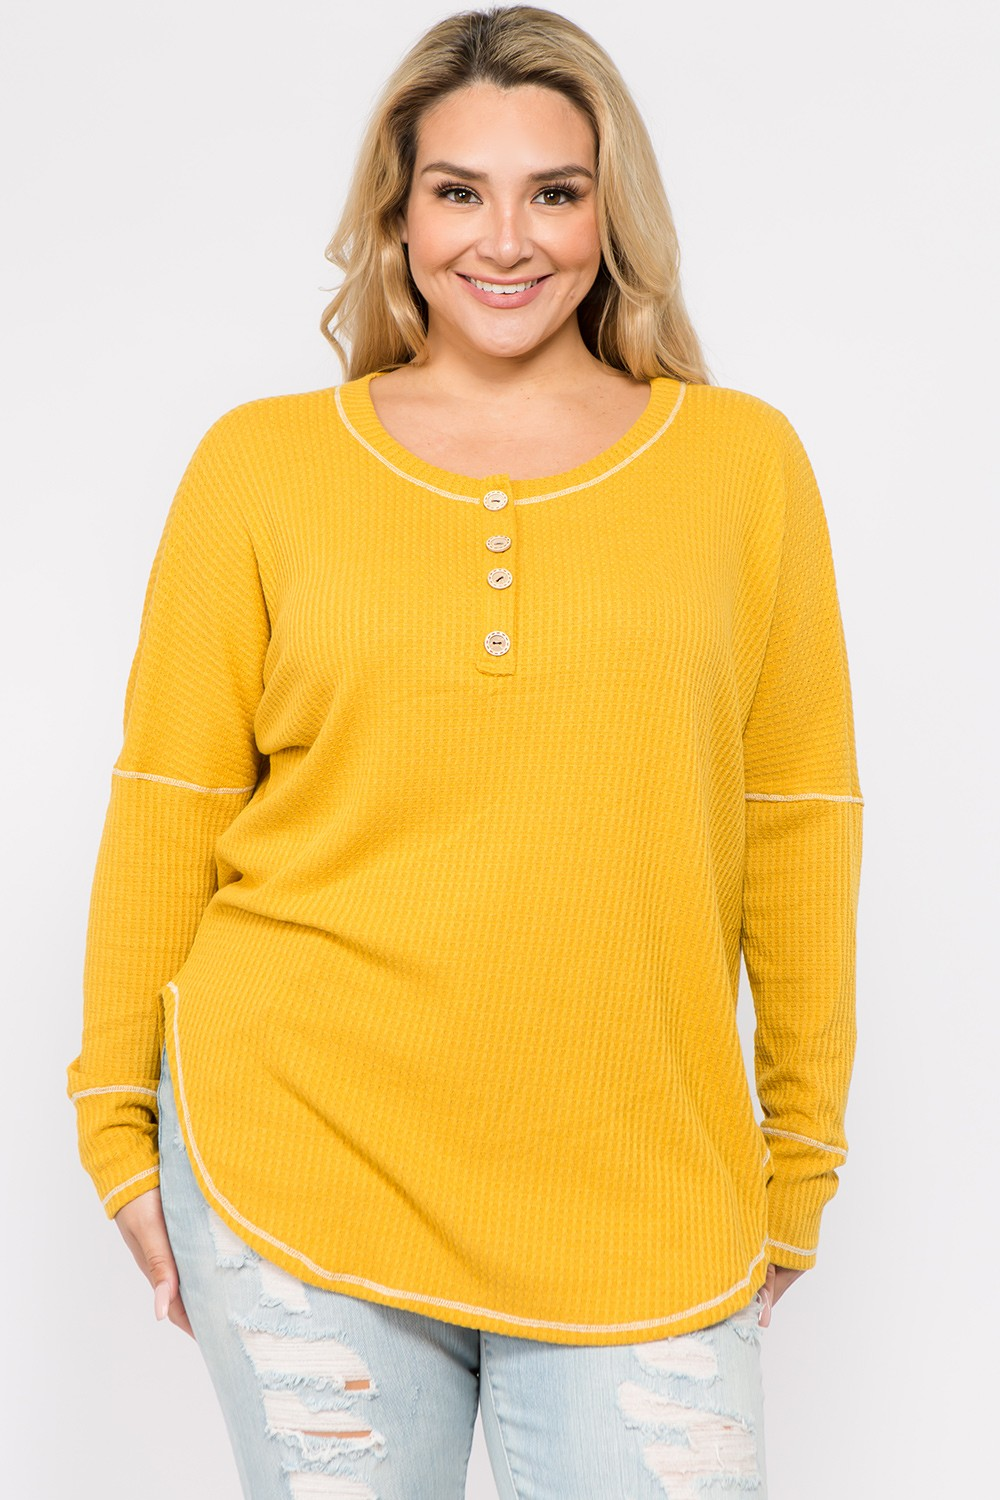 Lively Yellow Long Sleeve Top - Mustard - Front